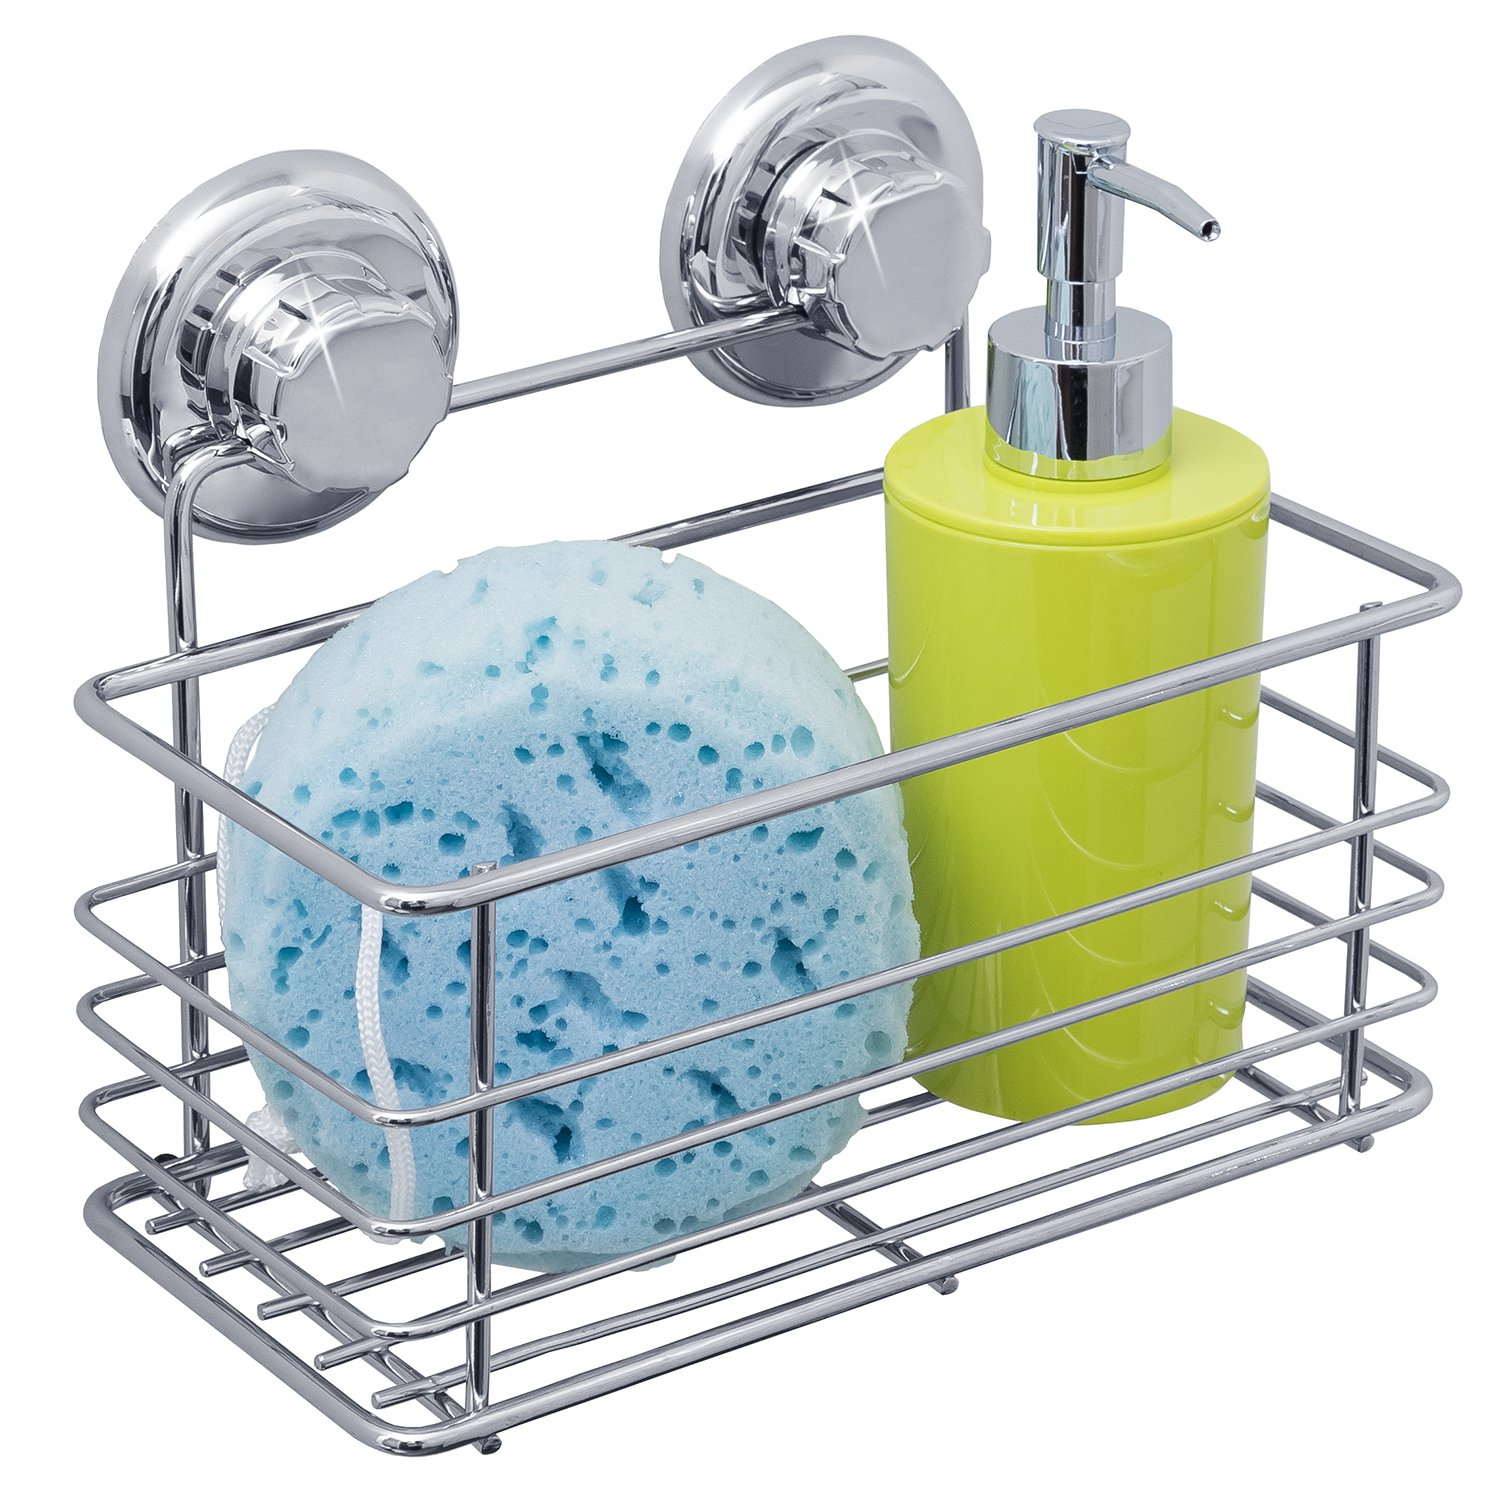 Tatkraft Vena Bath Shelf Shower Caddy Suction Cups Megalock Chrome ...